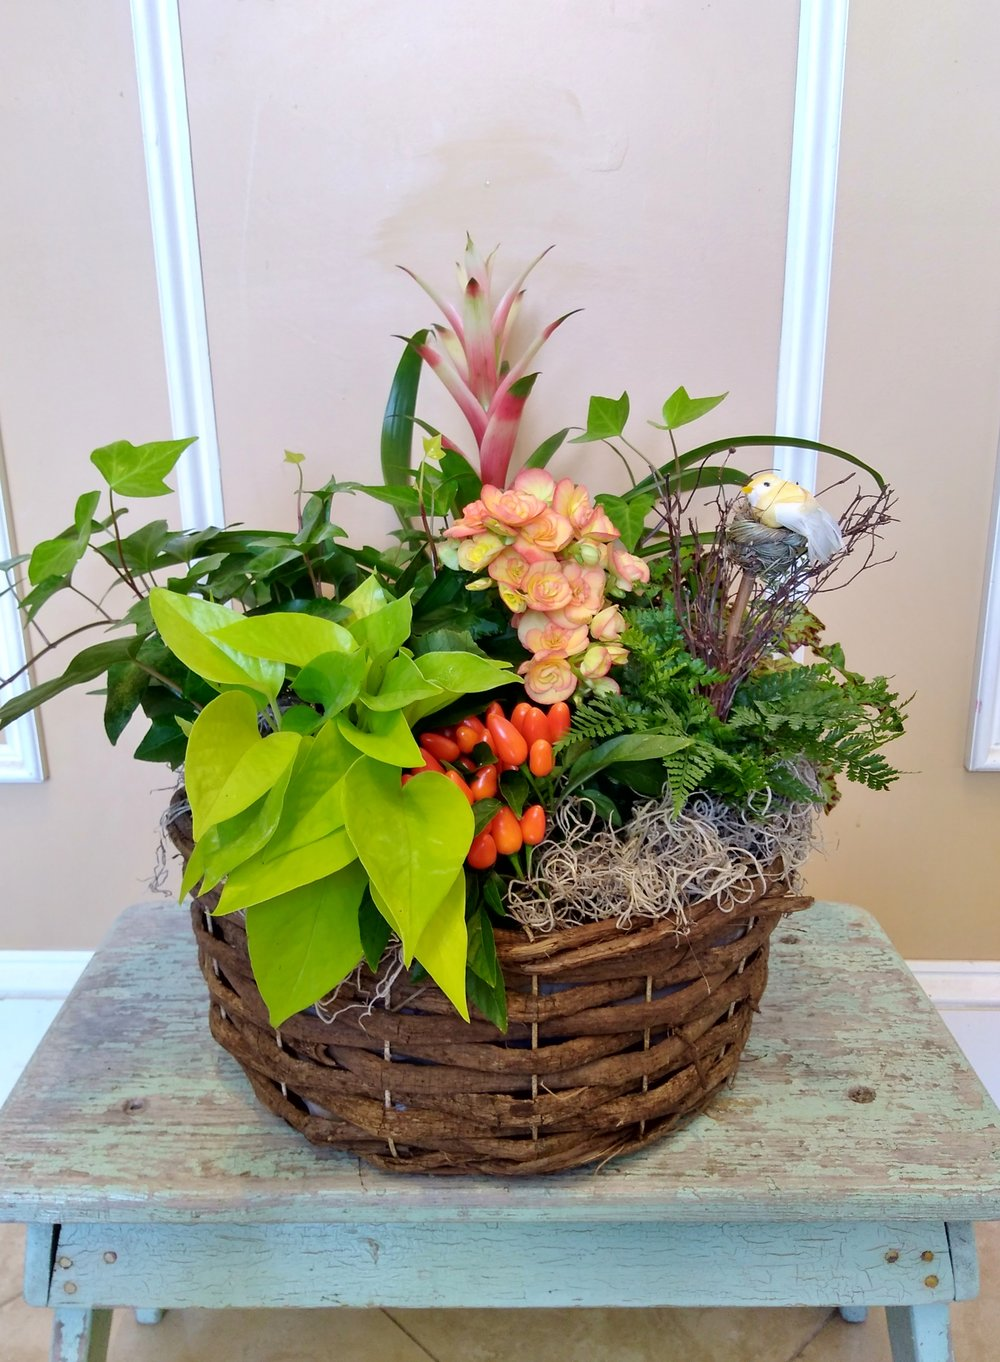 C2 $60-$150 European plant basket. $100 as shown.